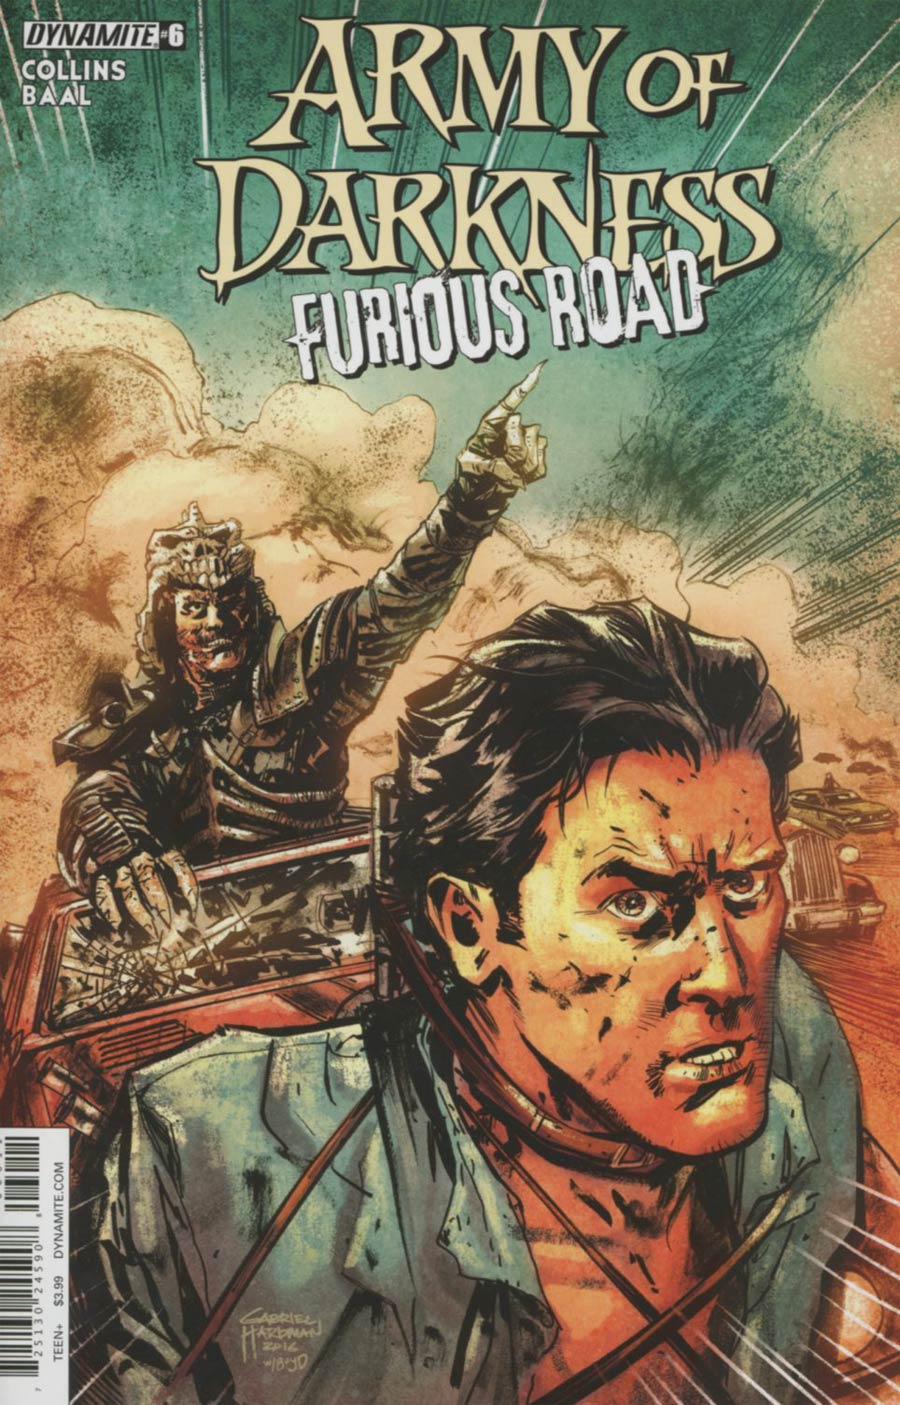 Army Of Darkness Furious Road #6 Cover A Regular Gabriel Hardman Cover